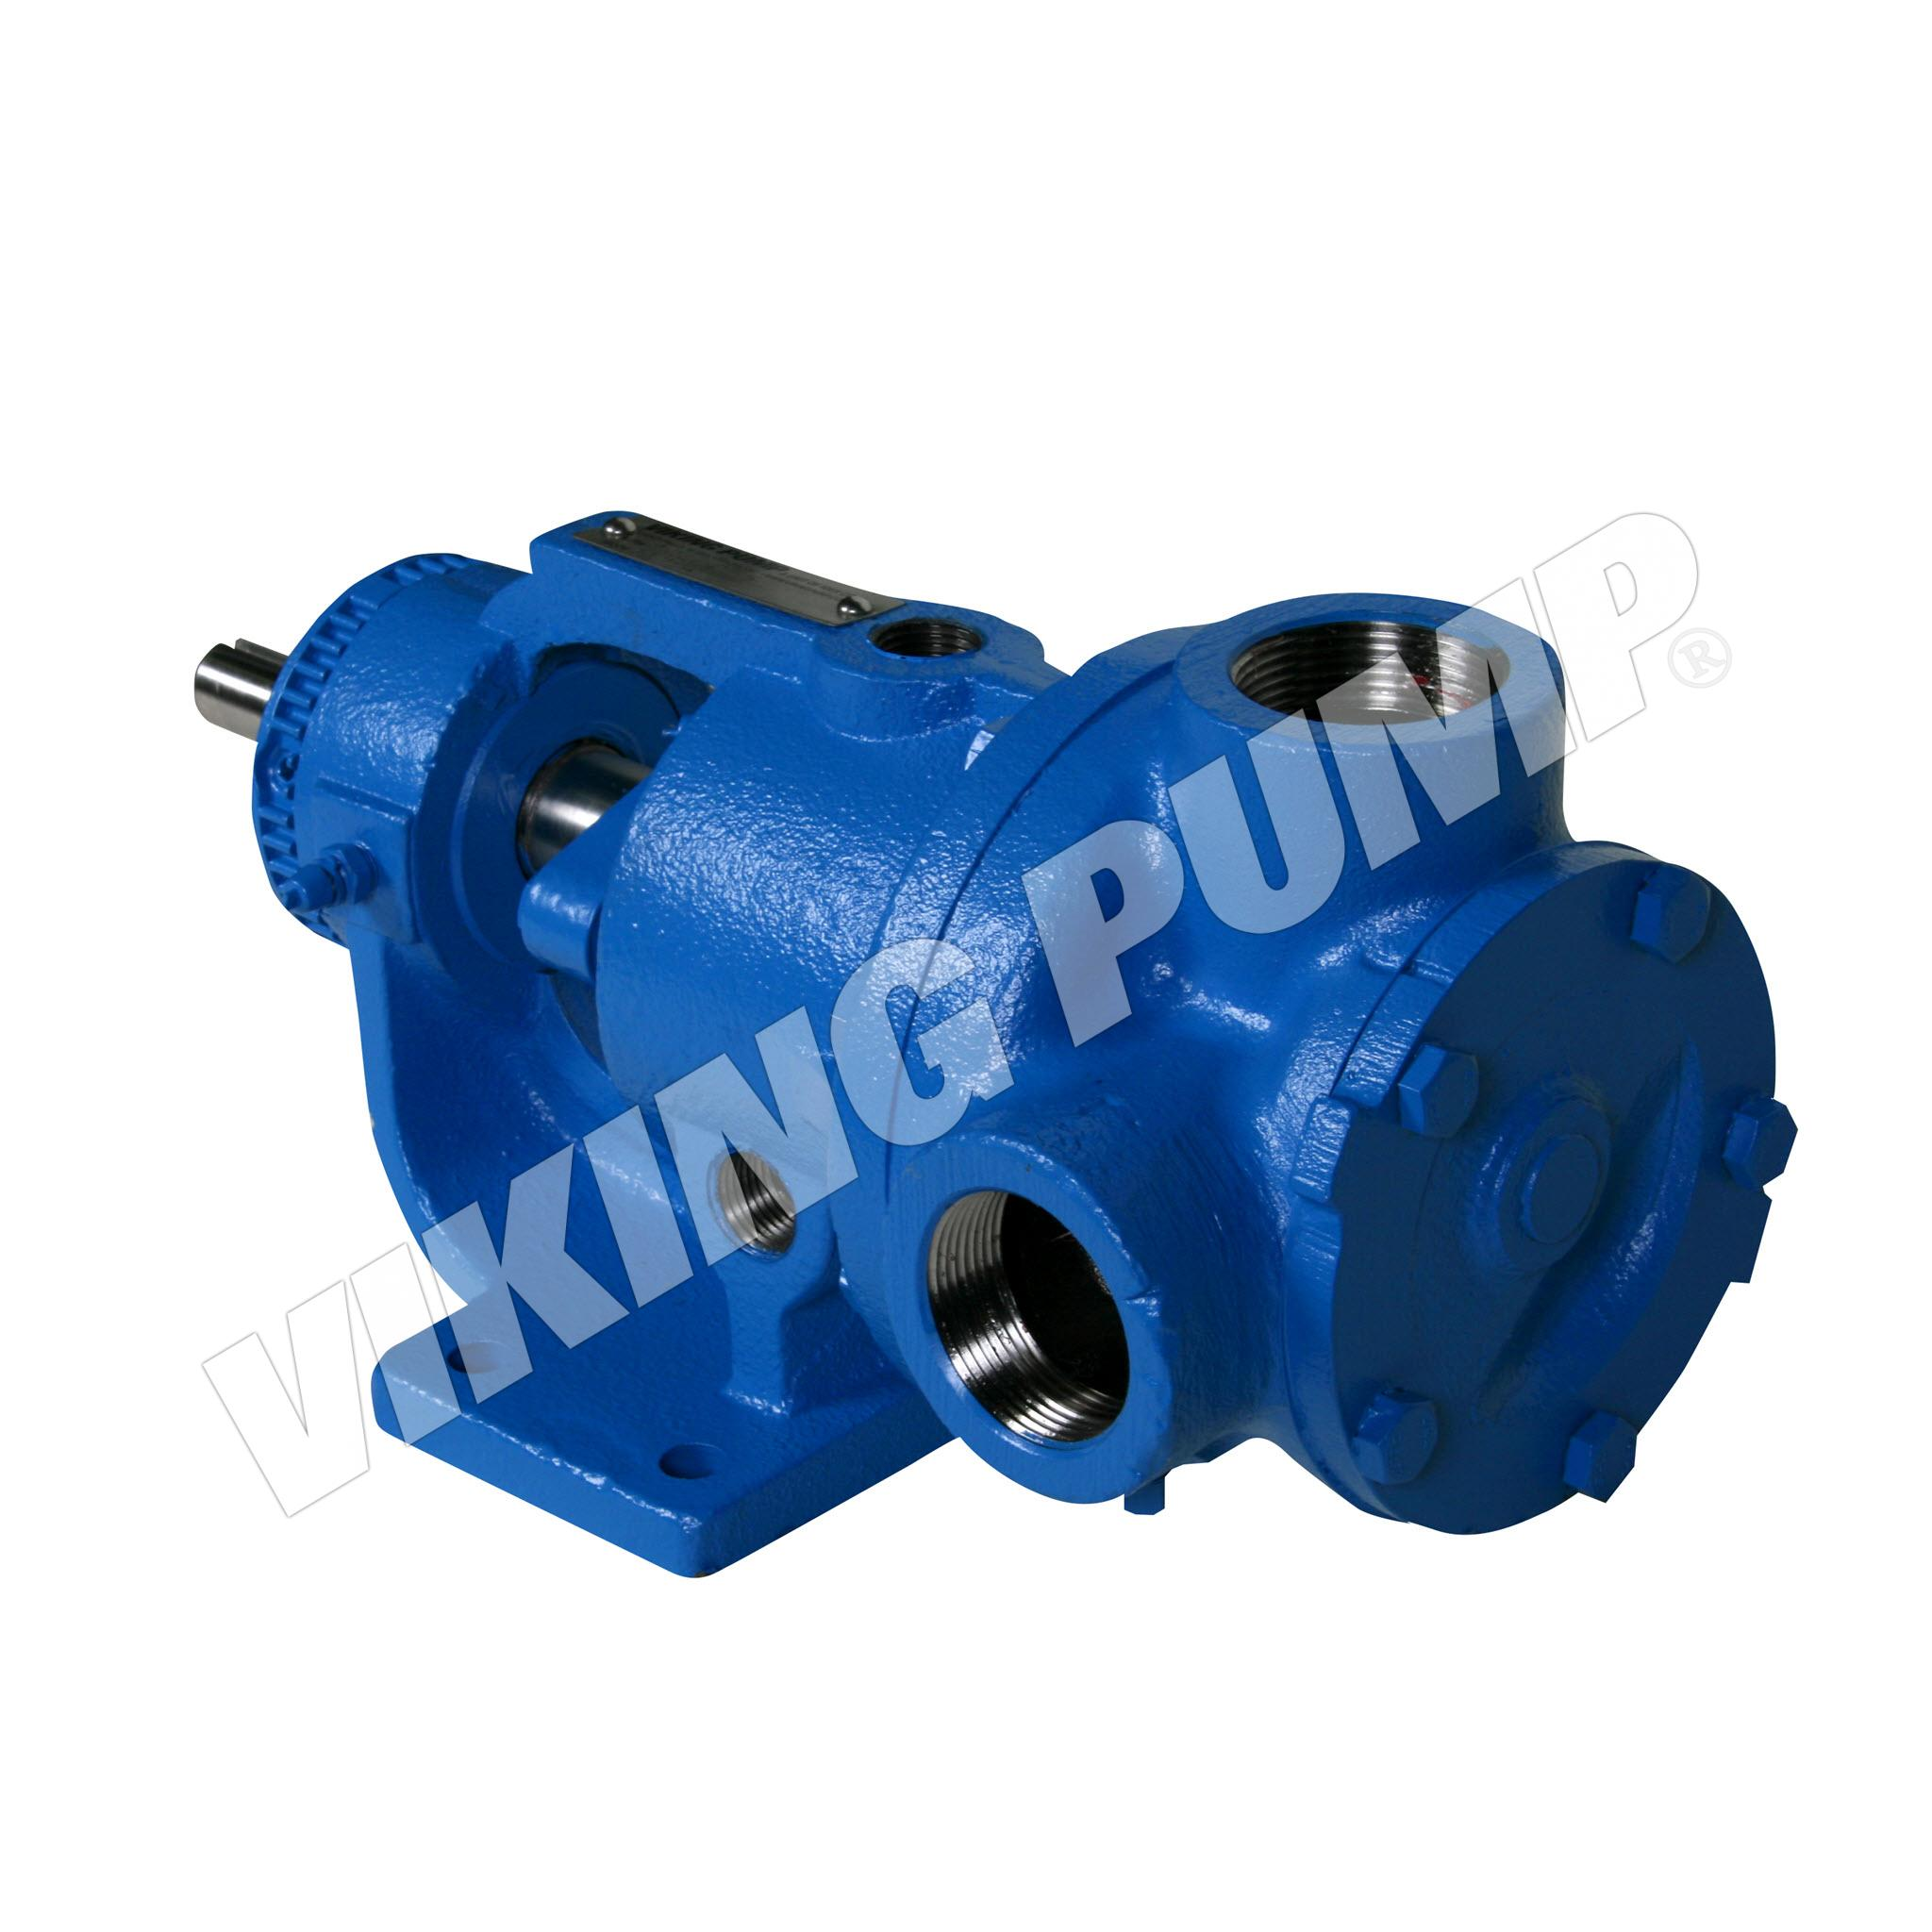 Model HL724, Foot Mounted, Packed Gland, less Relief Valve Pump